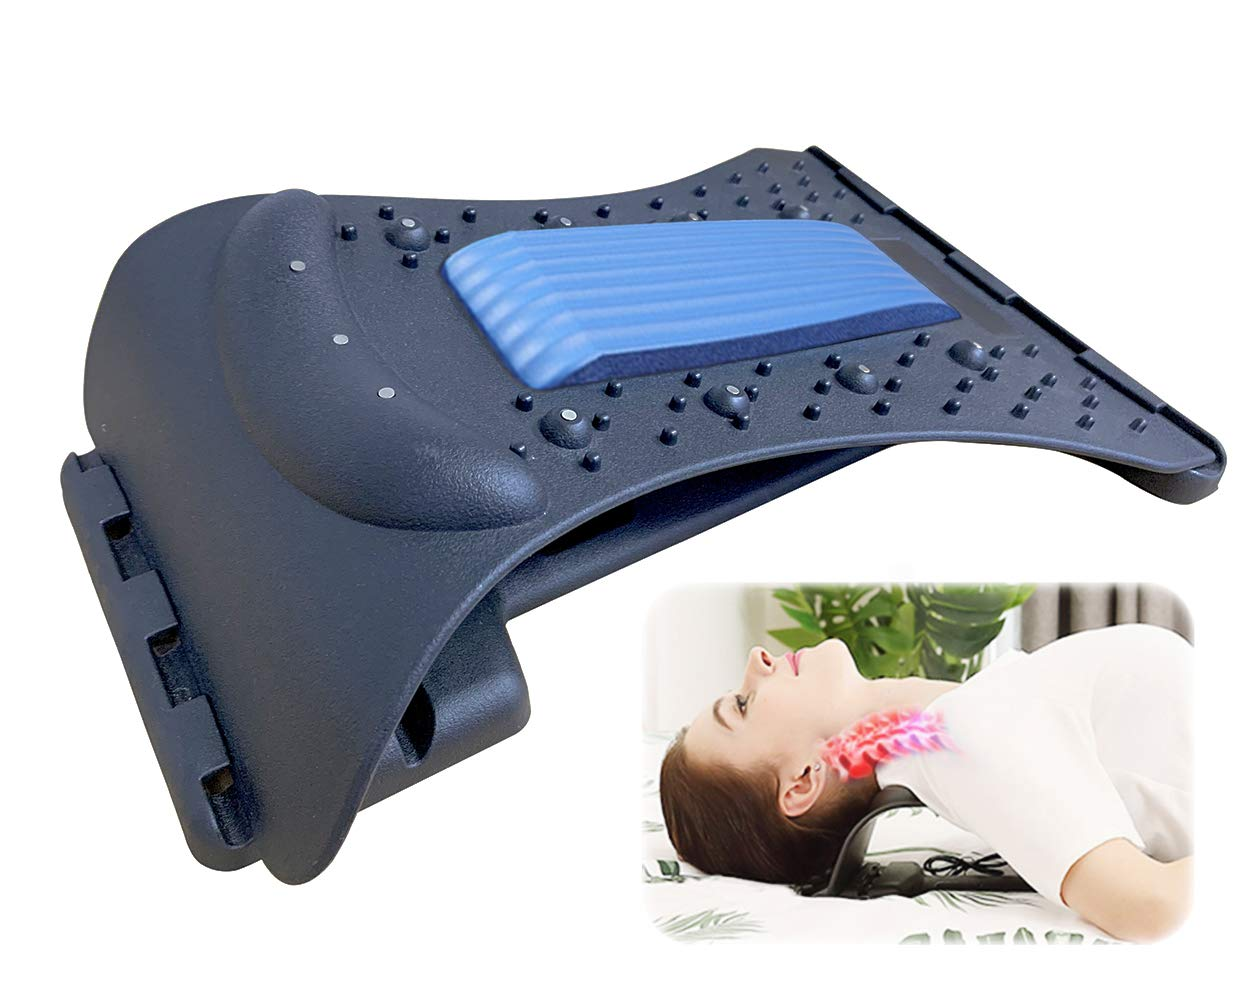 Back Stretcher Lumbar Pain Max 48% OFF Save money M Adjustable Device Relief